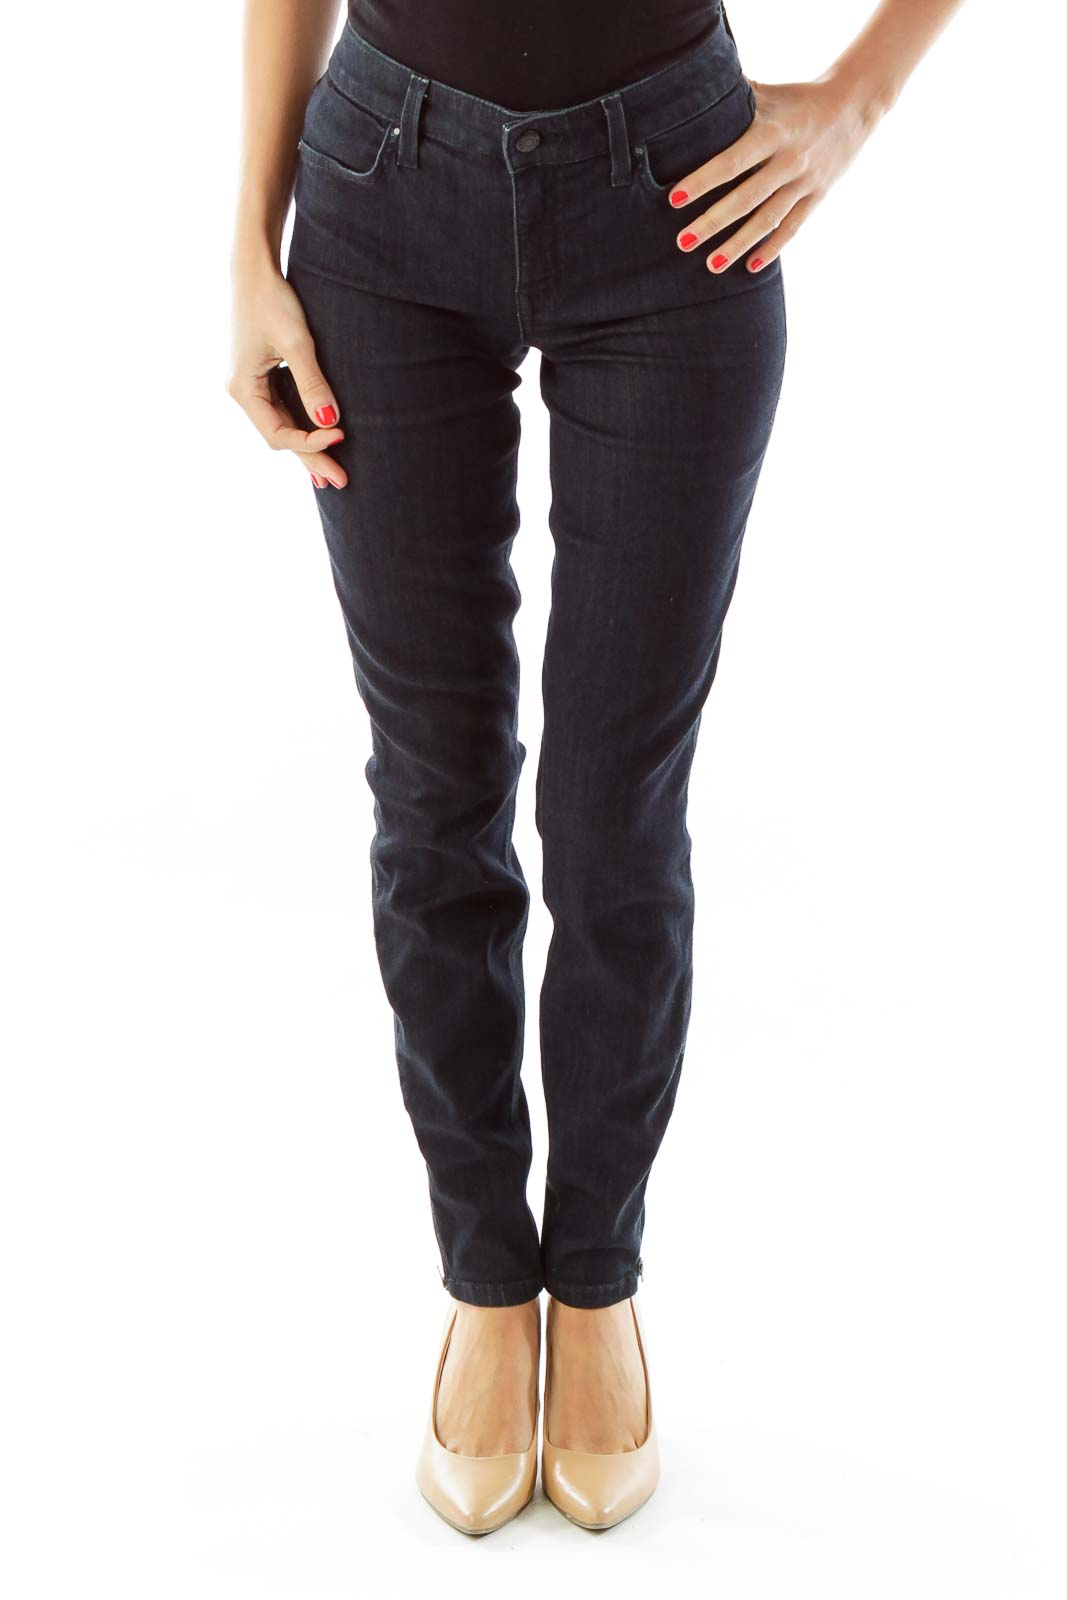 Navy Skinny Ankle-Fly Zipper Jeans Front